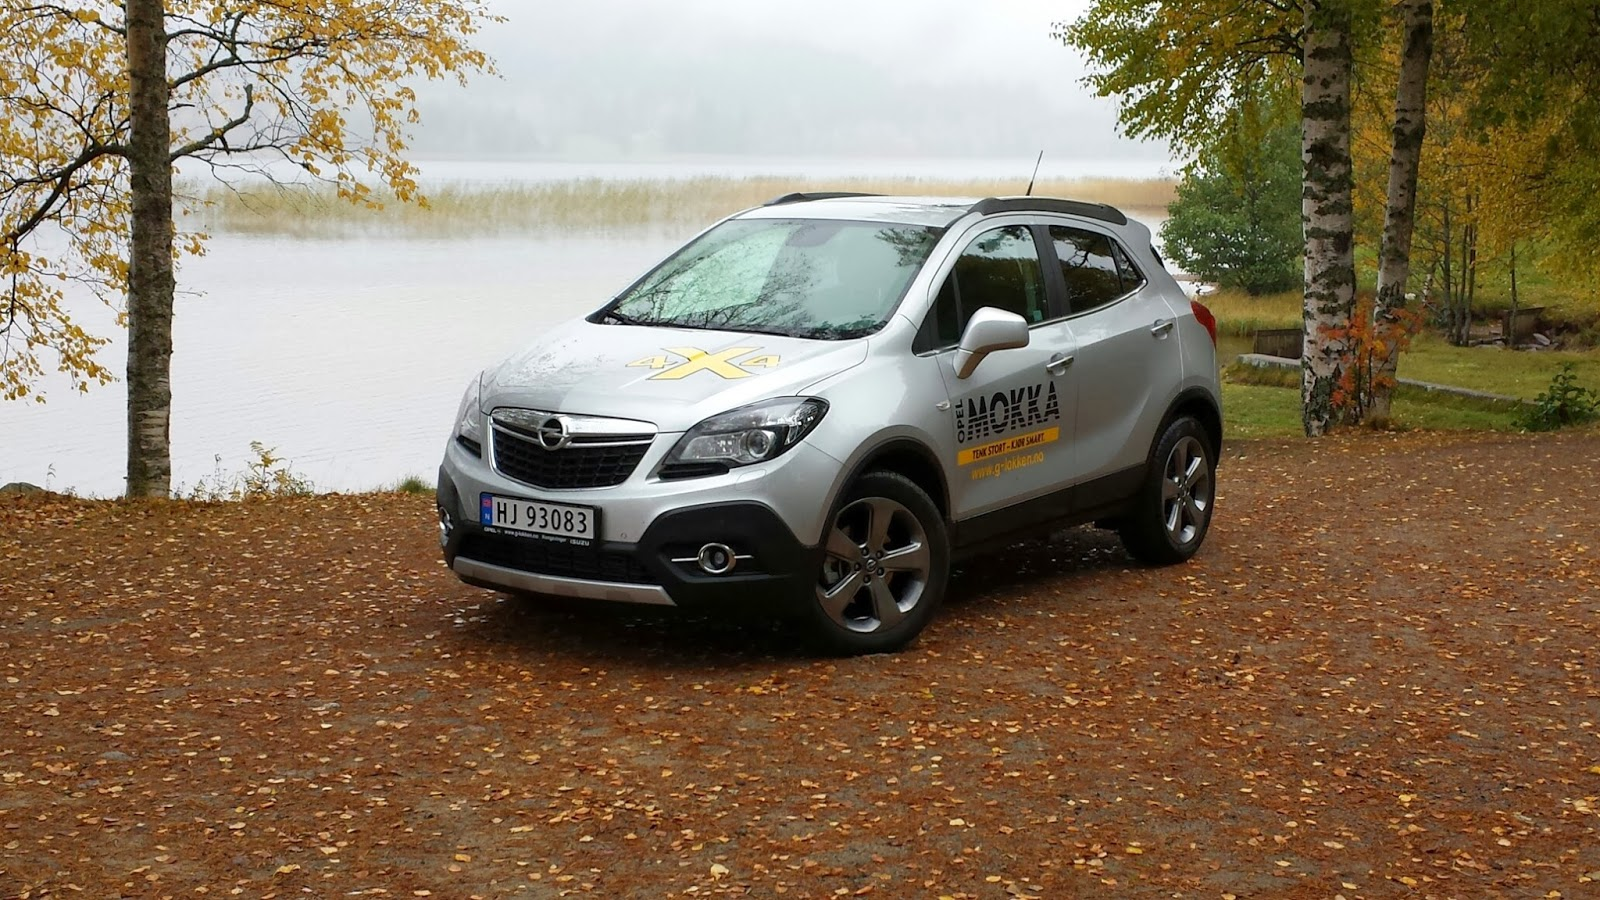 test opel mokka 1 7 cdti 130 hk 4wd bil og motorbloggen. Black Bedroom Furniture Sets. Home Design Ideas